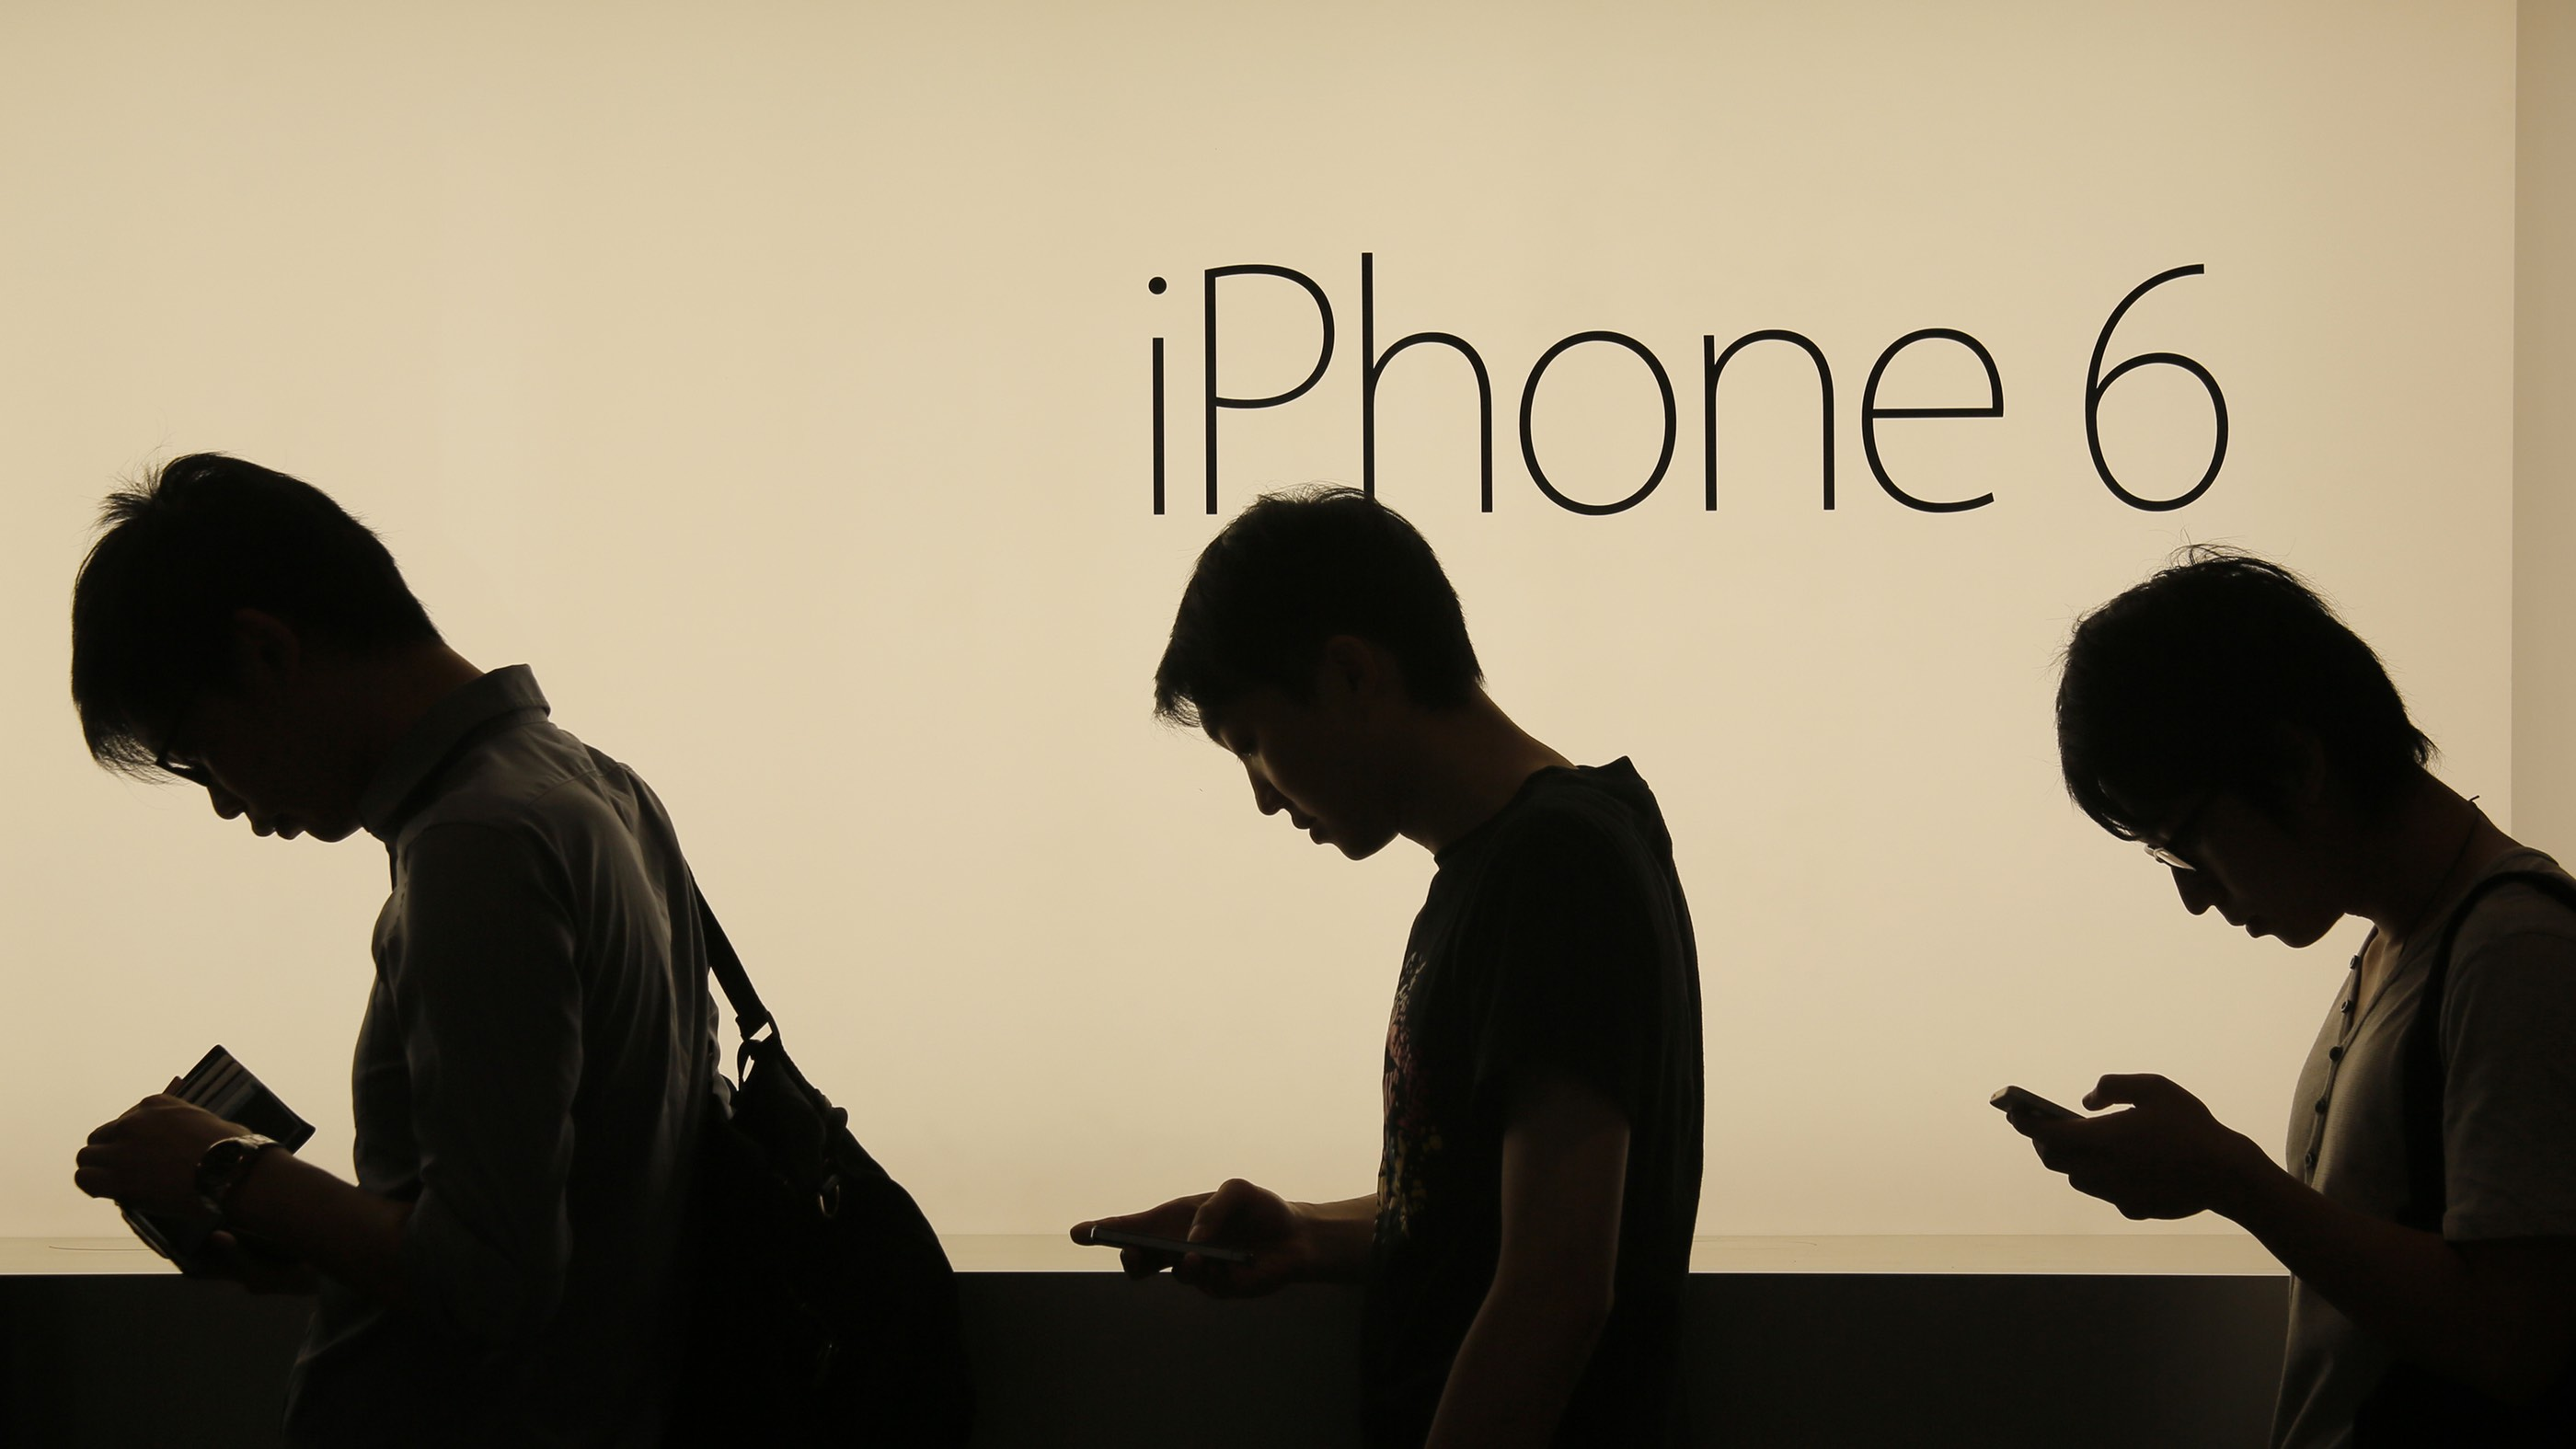 In this photo taken on Friday, Sept. 19, 2014, people wait to buy the new Apple iPhone 6 and 6 Plus devices outside an Apple store in Hong Kong. The Apple's new devices were released on Friday in Hong Kong, Singapore, Australia and Japan. (AP Photo/Vincent Yu)